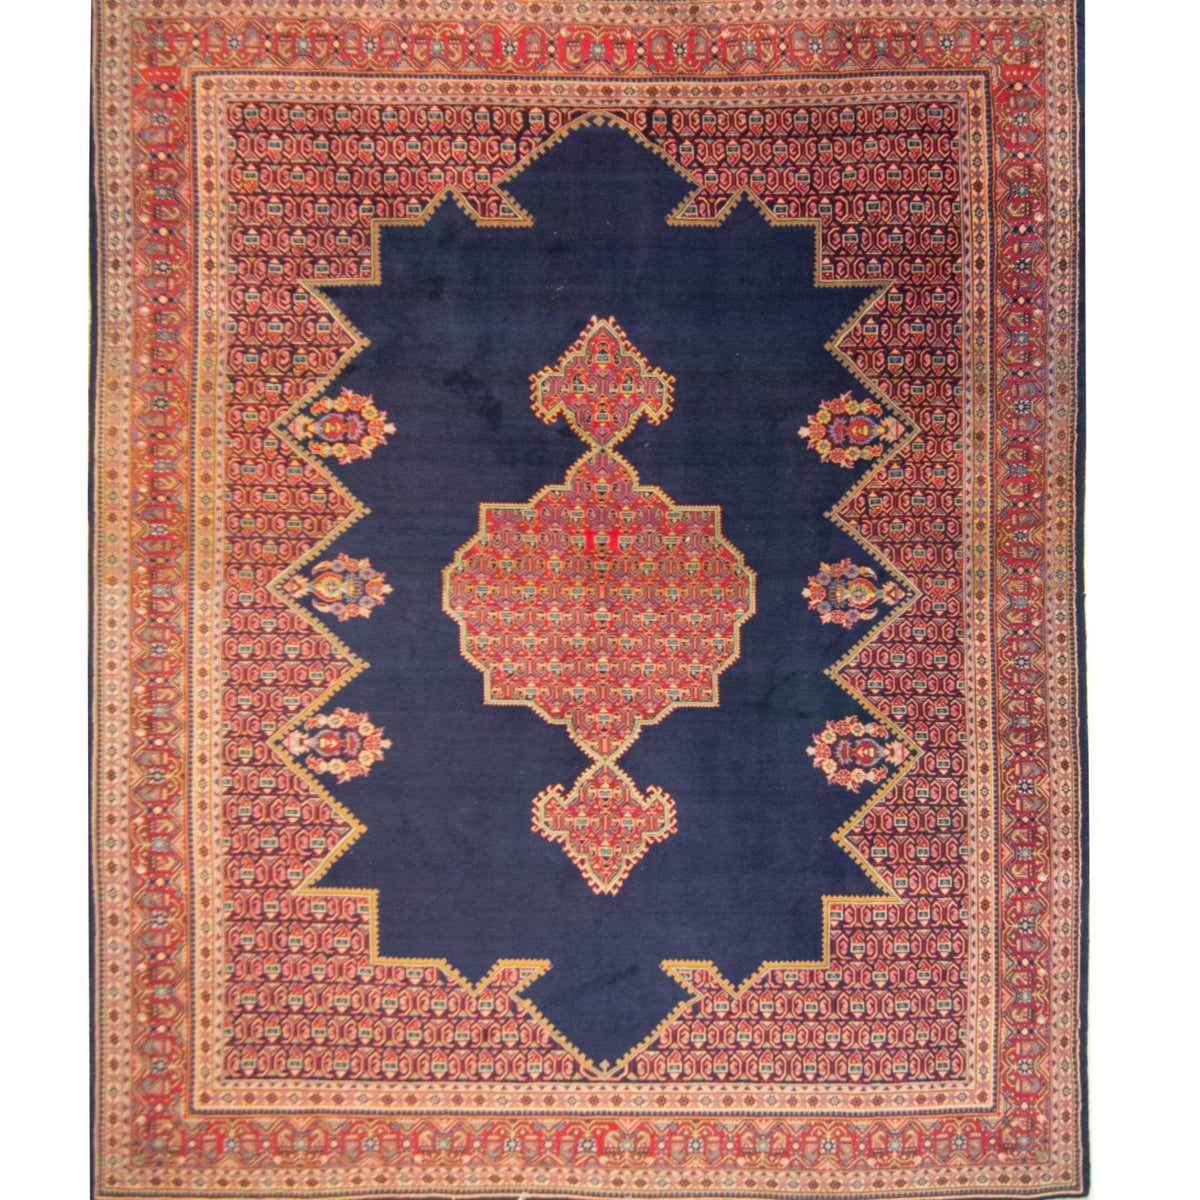 Extra Large Fine Hand-knotted Wool Persian Mahabad Rug 322cm x 438cm Persian-Rug | House-of-Haghi | NewMarket | Auckland | NZ | Handmade Persian Rugs | Hand Knotted Persian Rugs